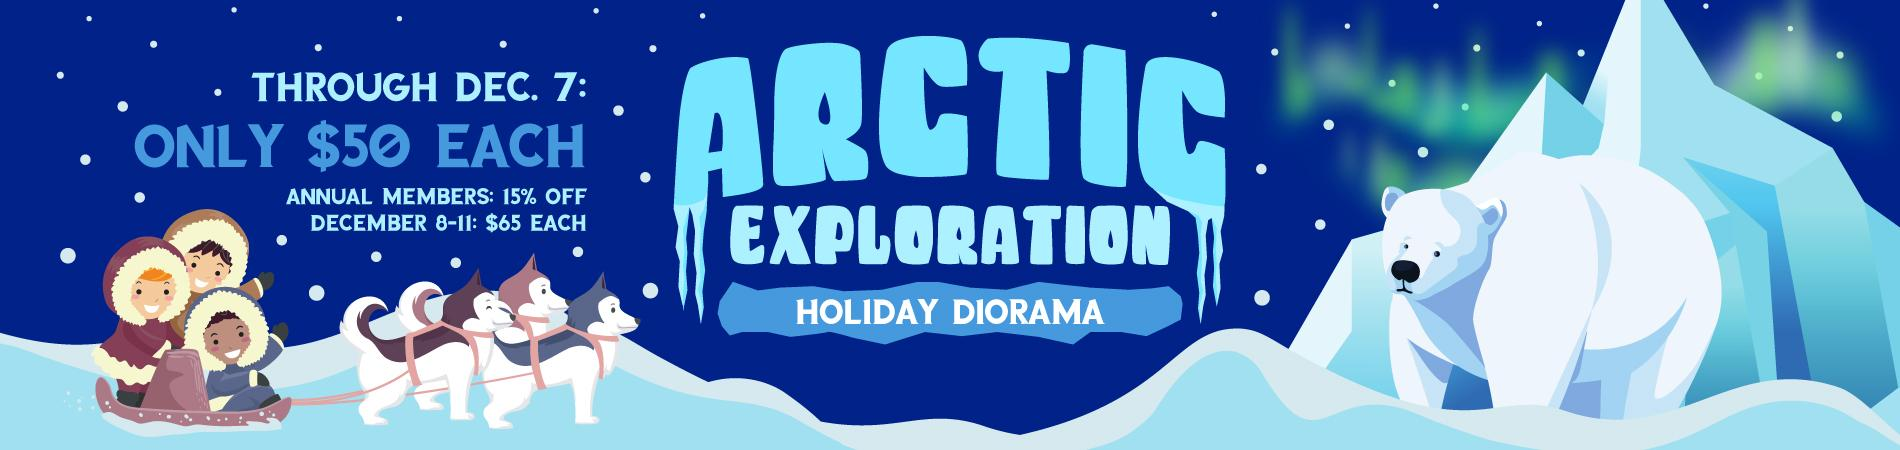 Arctic Exploration Holiday Diorama